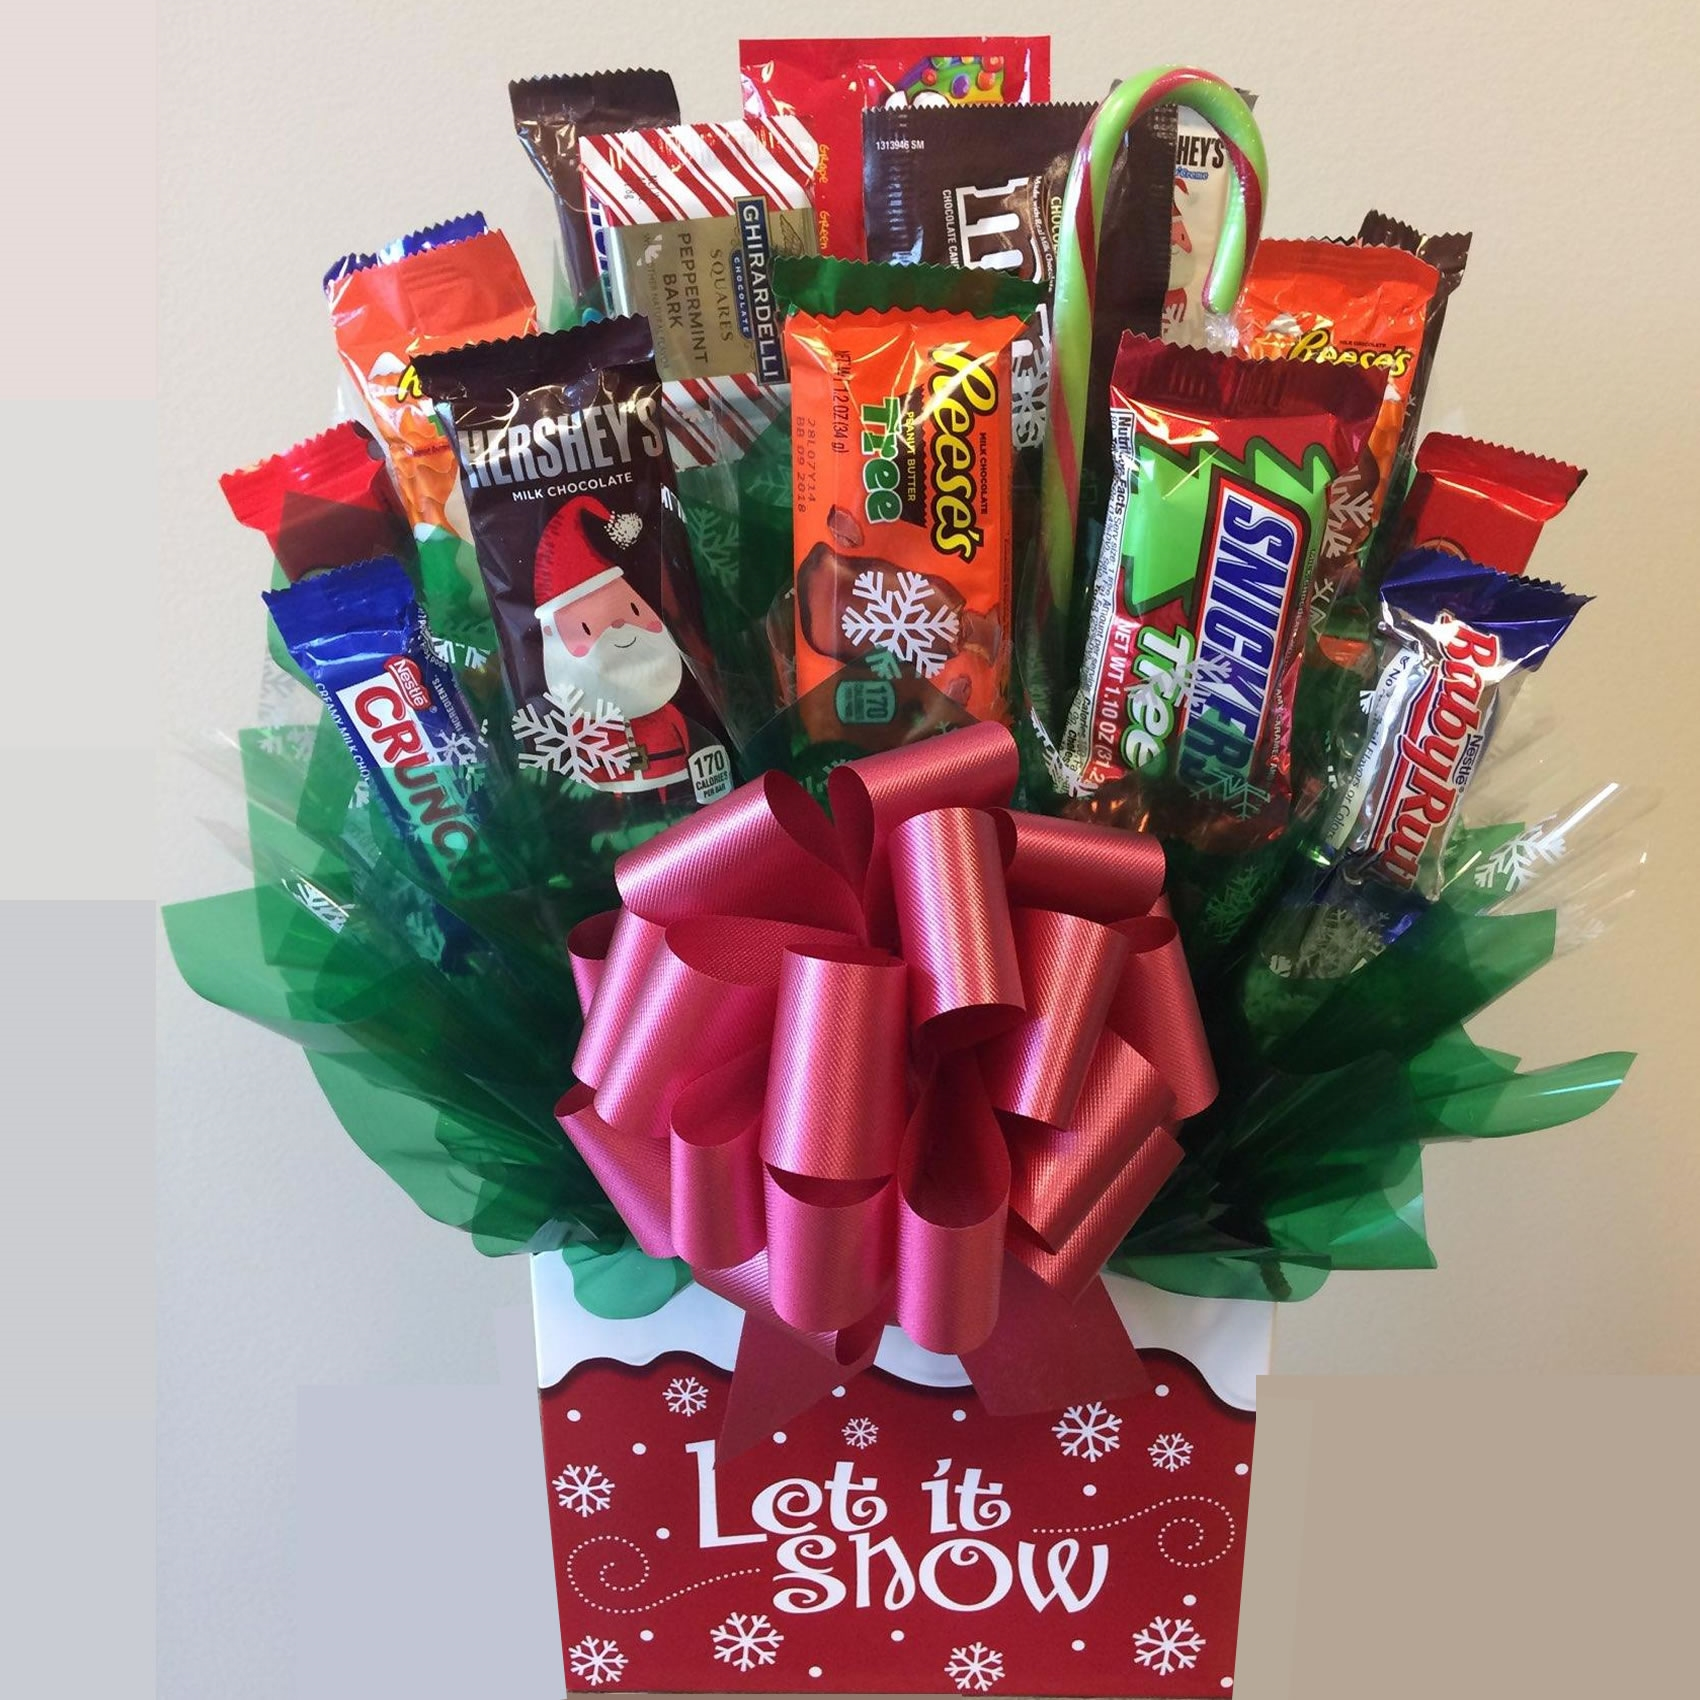 Features a delightful snowflake designer gift box. The entire family is sure to enjoy sharing a collection full and fun size chocolate bars and candies. This candy bouquet replaces a fresh flower gift and is an ideal to send for any winter holiday or occ #gift